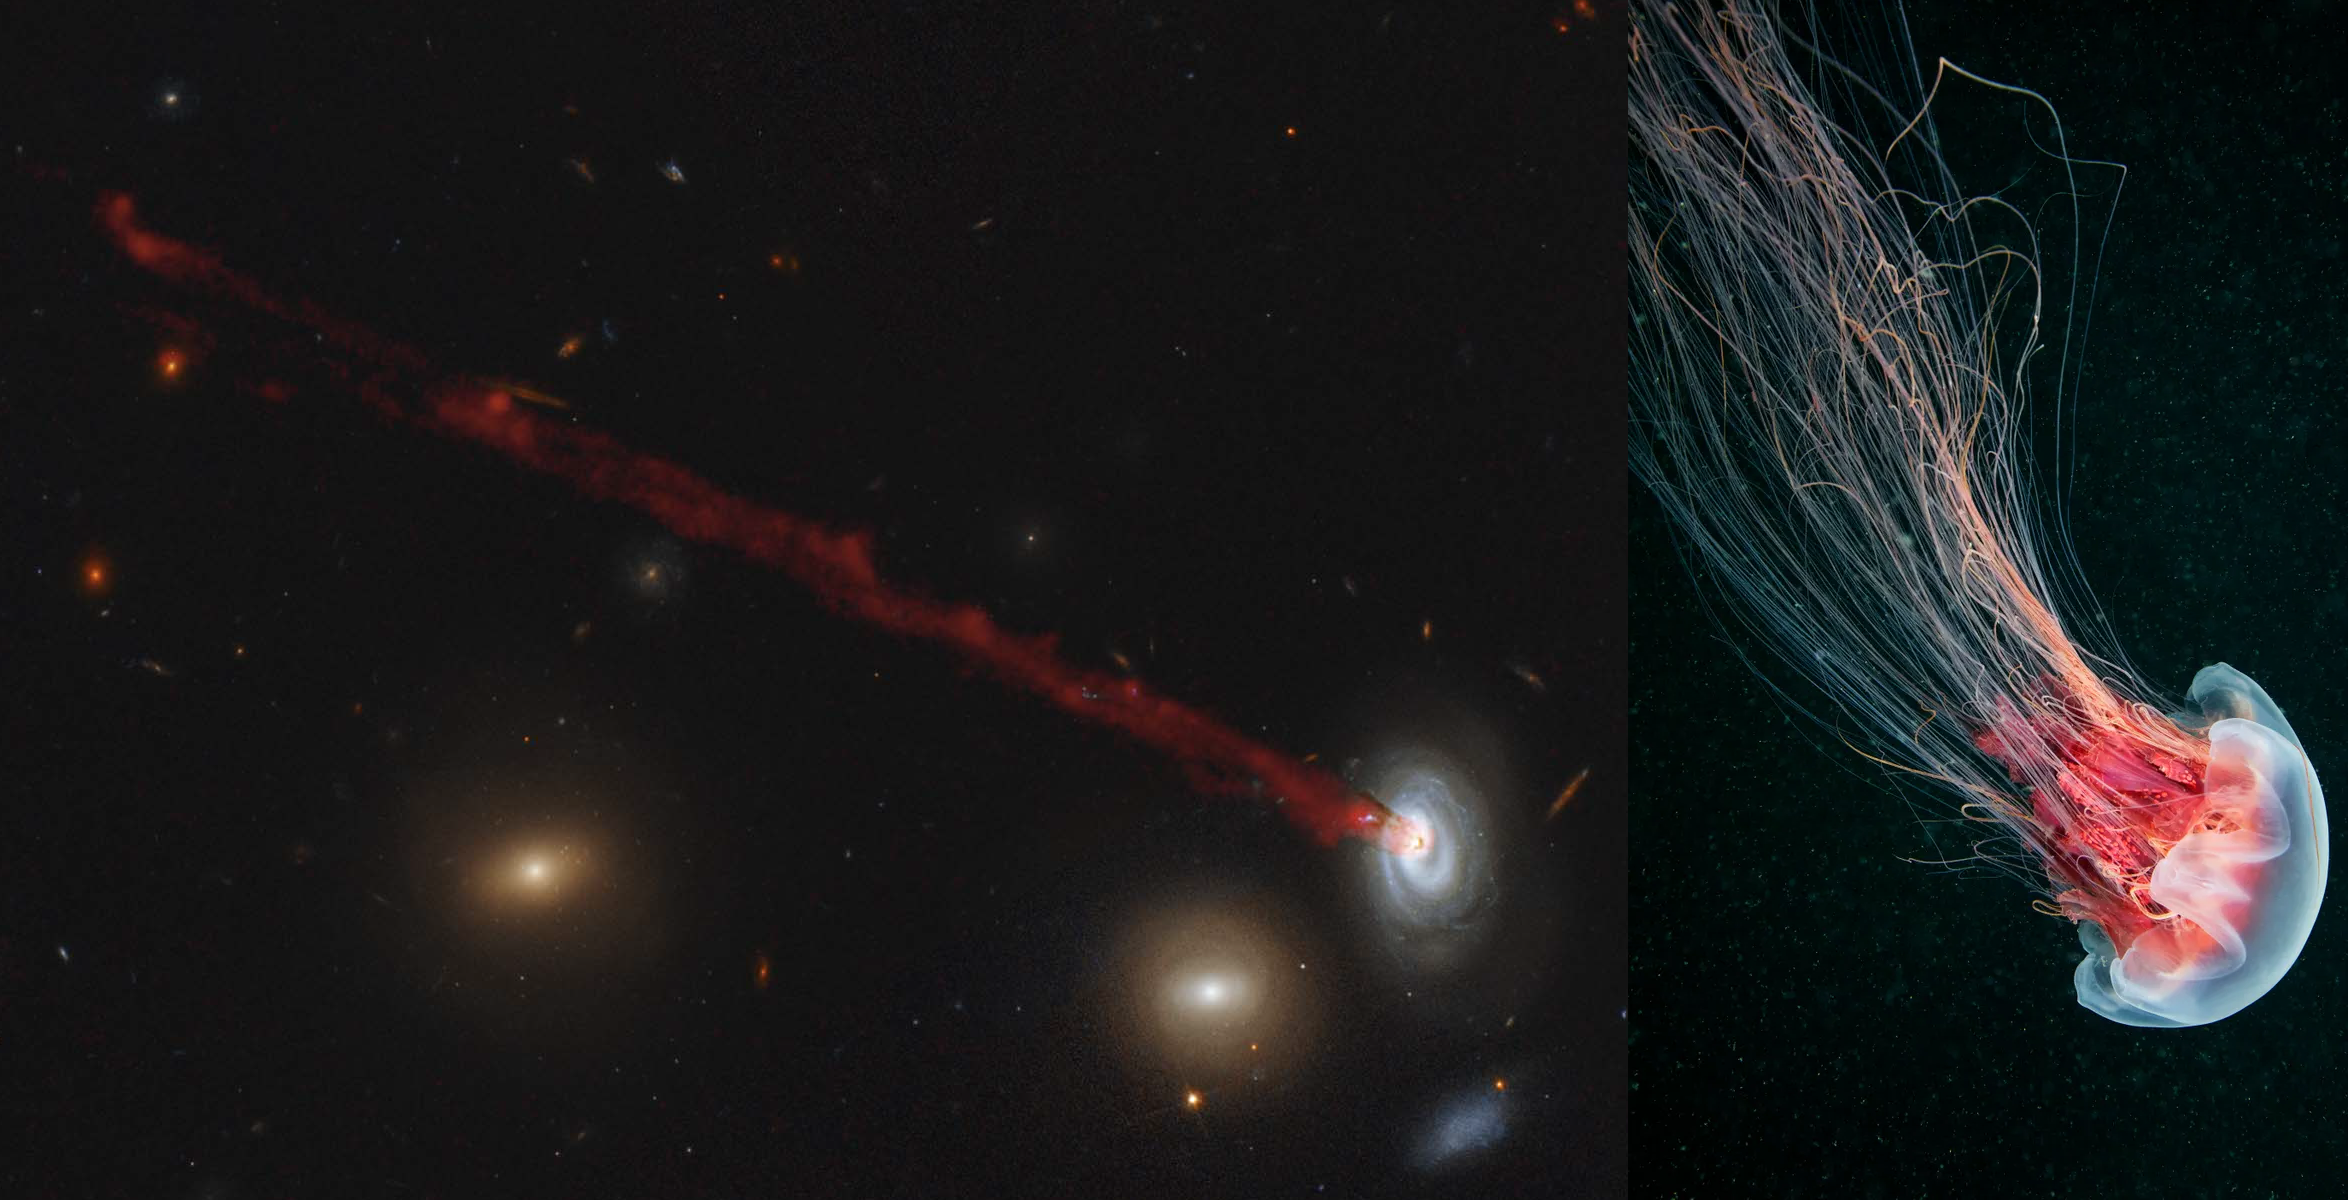 Left panel shows a photograph of a blue spiral galaxy in the bottom-right of the image, with a long, thin, red tail of gas streaming behind it, towards the top-left. The width of the tail is about half the diameter of the galaxy, and its length is about ten times the size of the galaxy. Many other galaxies can be seen in the image, three of a similar size to the spiral galaxy, but mostly far smaller and fainter. Right panel shows a jellyfish, with a blue bell (head) and long, red tentacles. The jellyfish is oriented the same way as the galaxy, to show the similar shapes of the two.